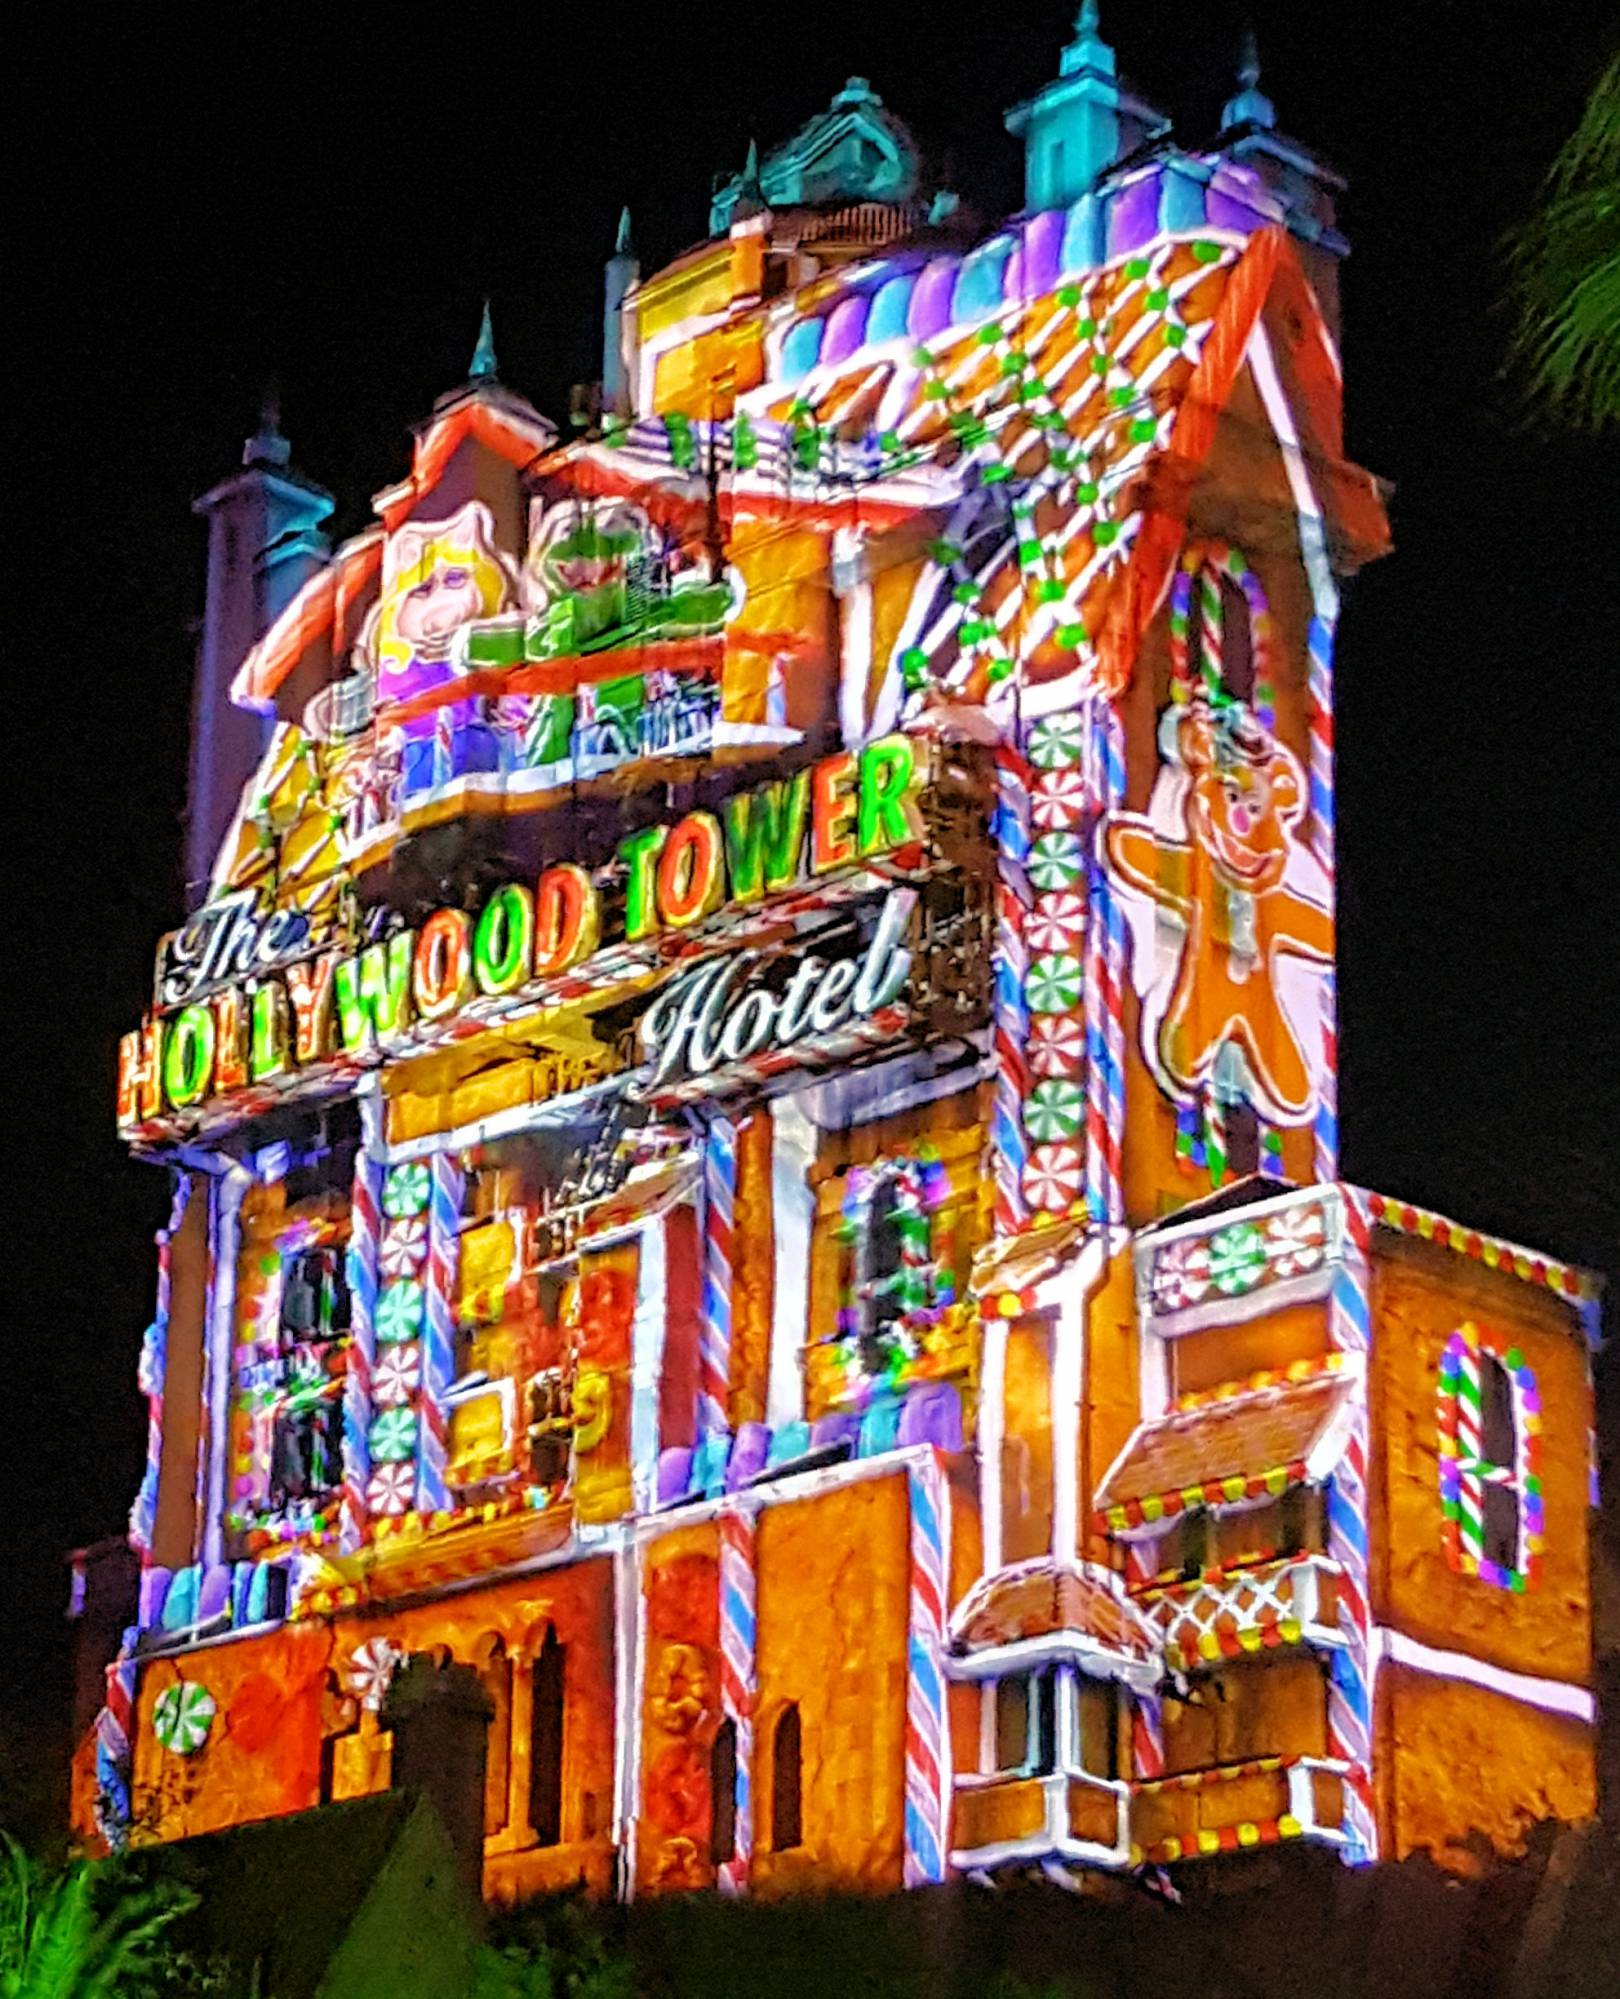 Sunset Seasons Greetings Tower of Terror